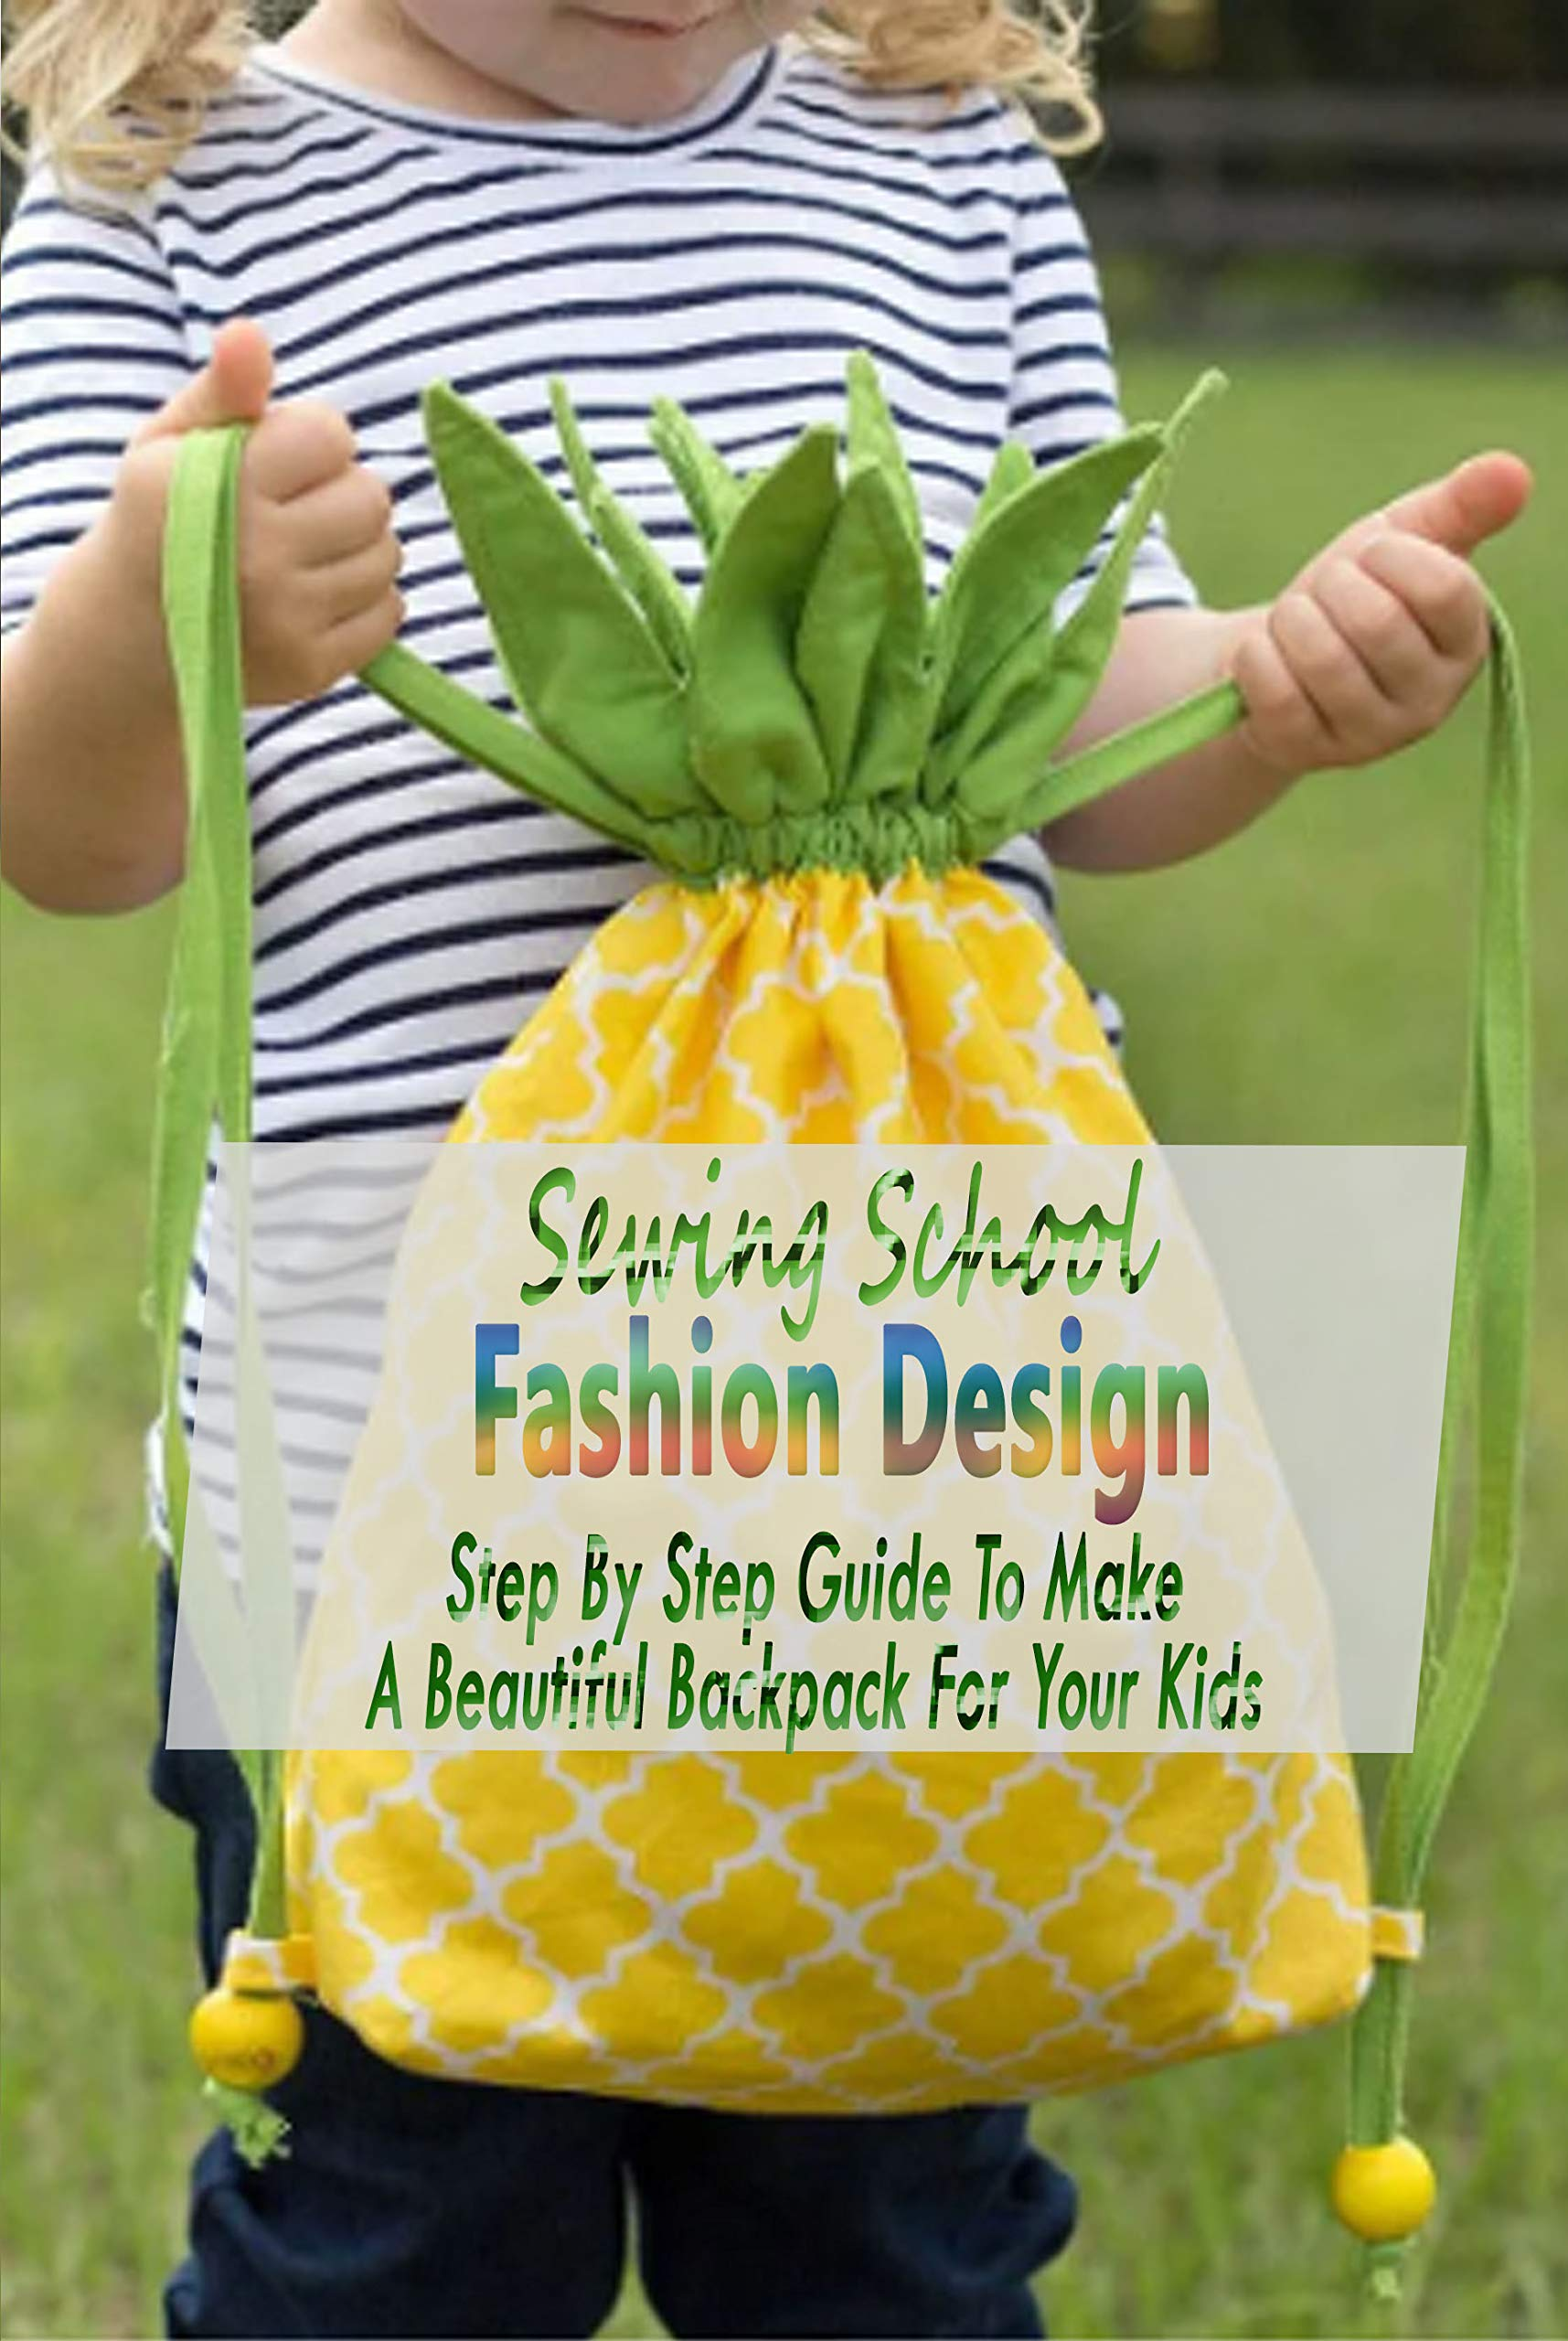 Sewing School Fashion Design: Step By Step Guide To Make A Beautiful Backpack For Your Kids: Gift Ideas for Holiday